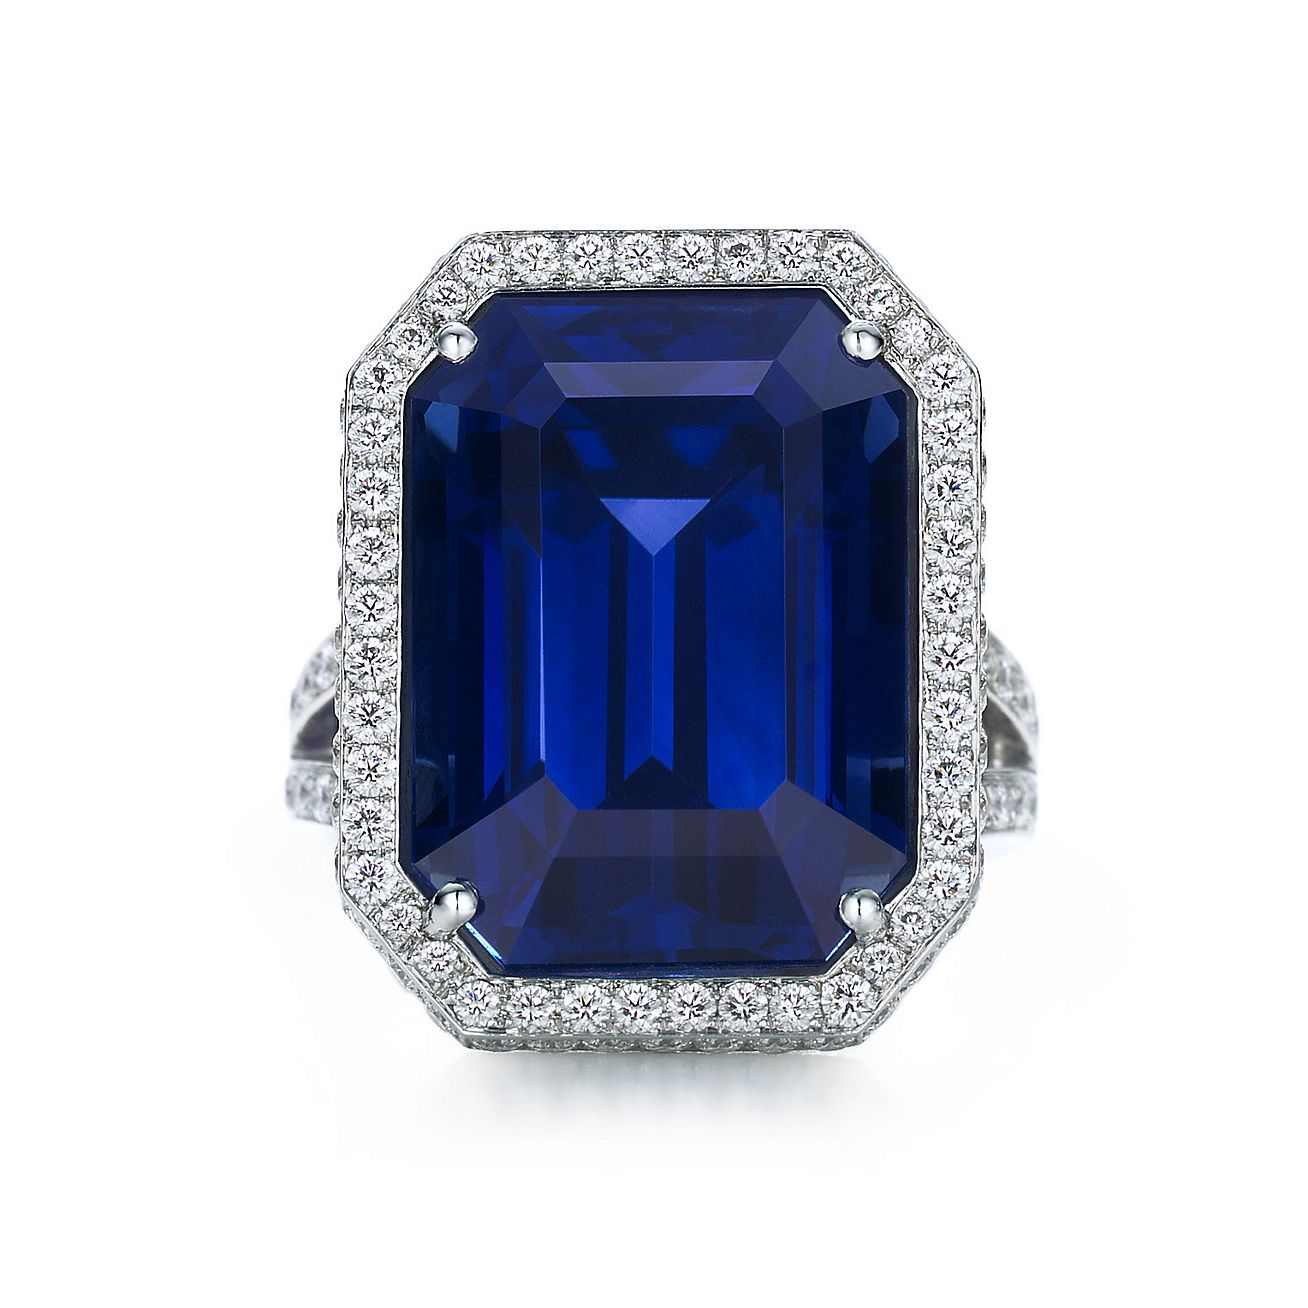 Tiffany Diamond And Sapphire Engagement Ring